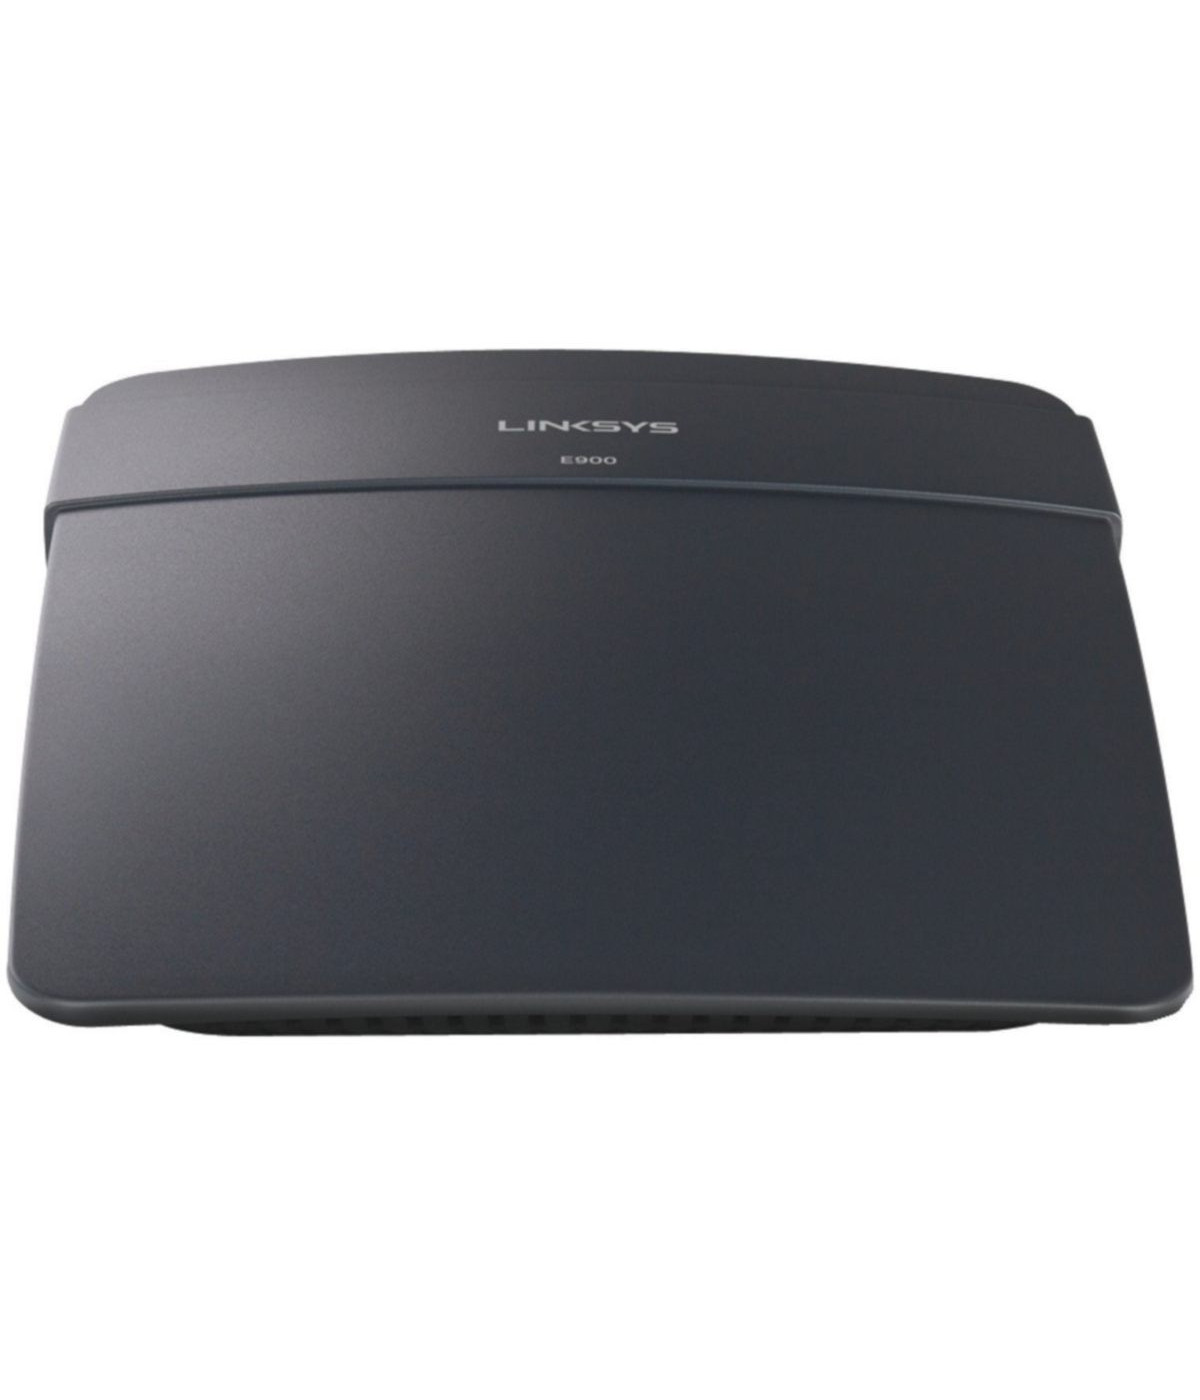 SWITCH LINKSYS E900-LA